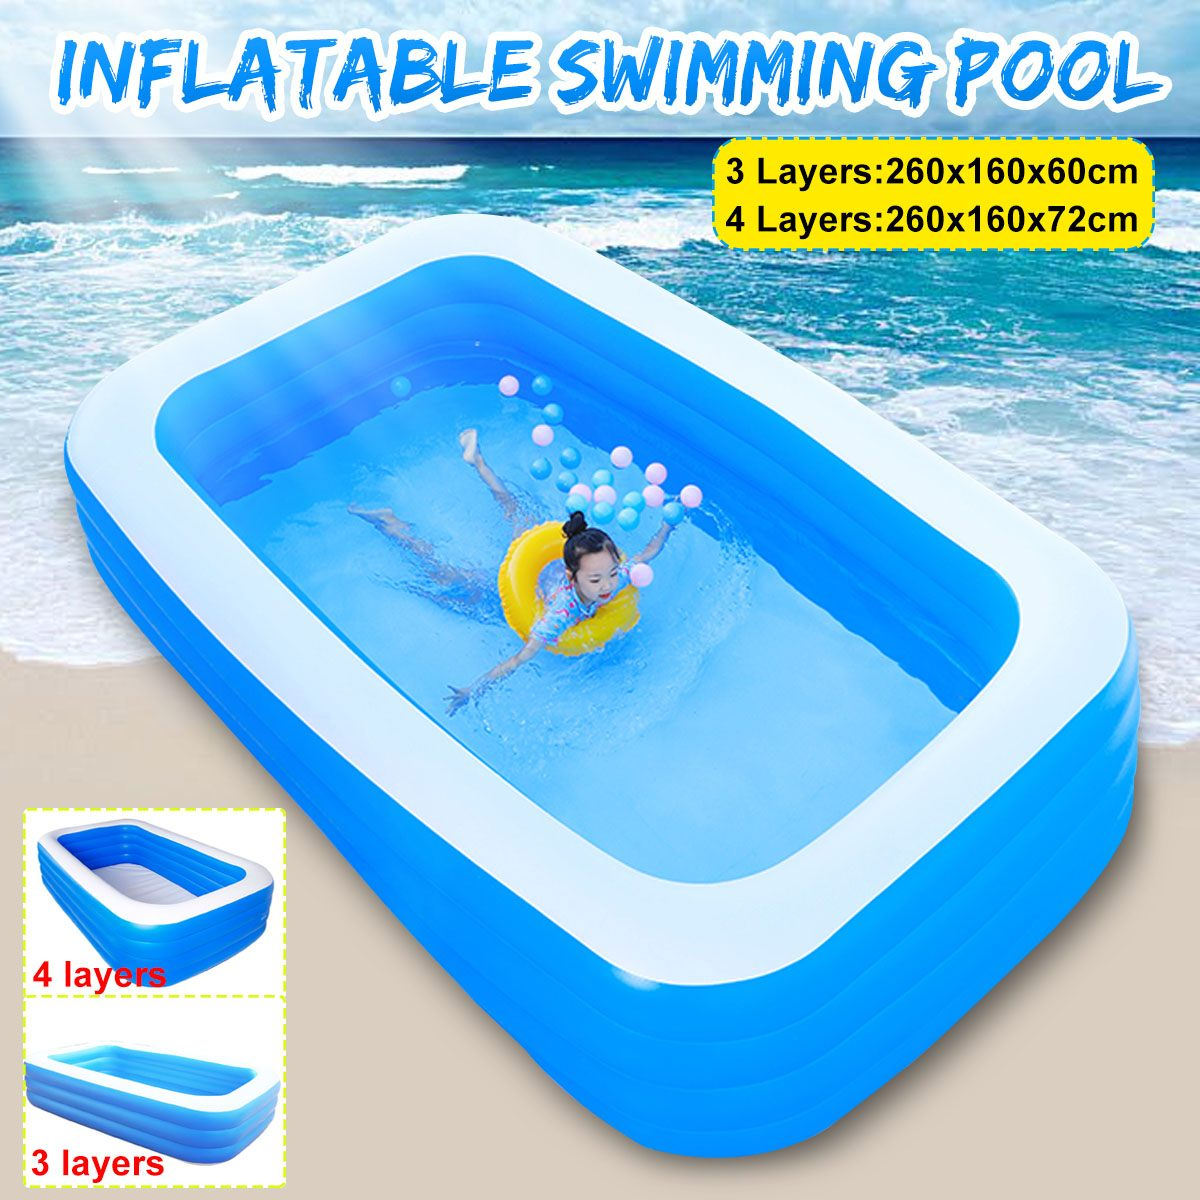 3/4 Layers Children Bathing Tub Baby Home Use Paddling Pool Inflatable Square Swimming Pool Kids Inflatable Pool 260x160x60/72cm